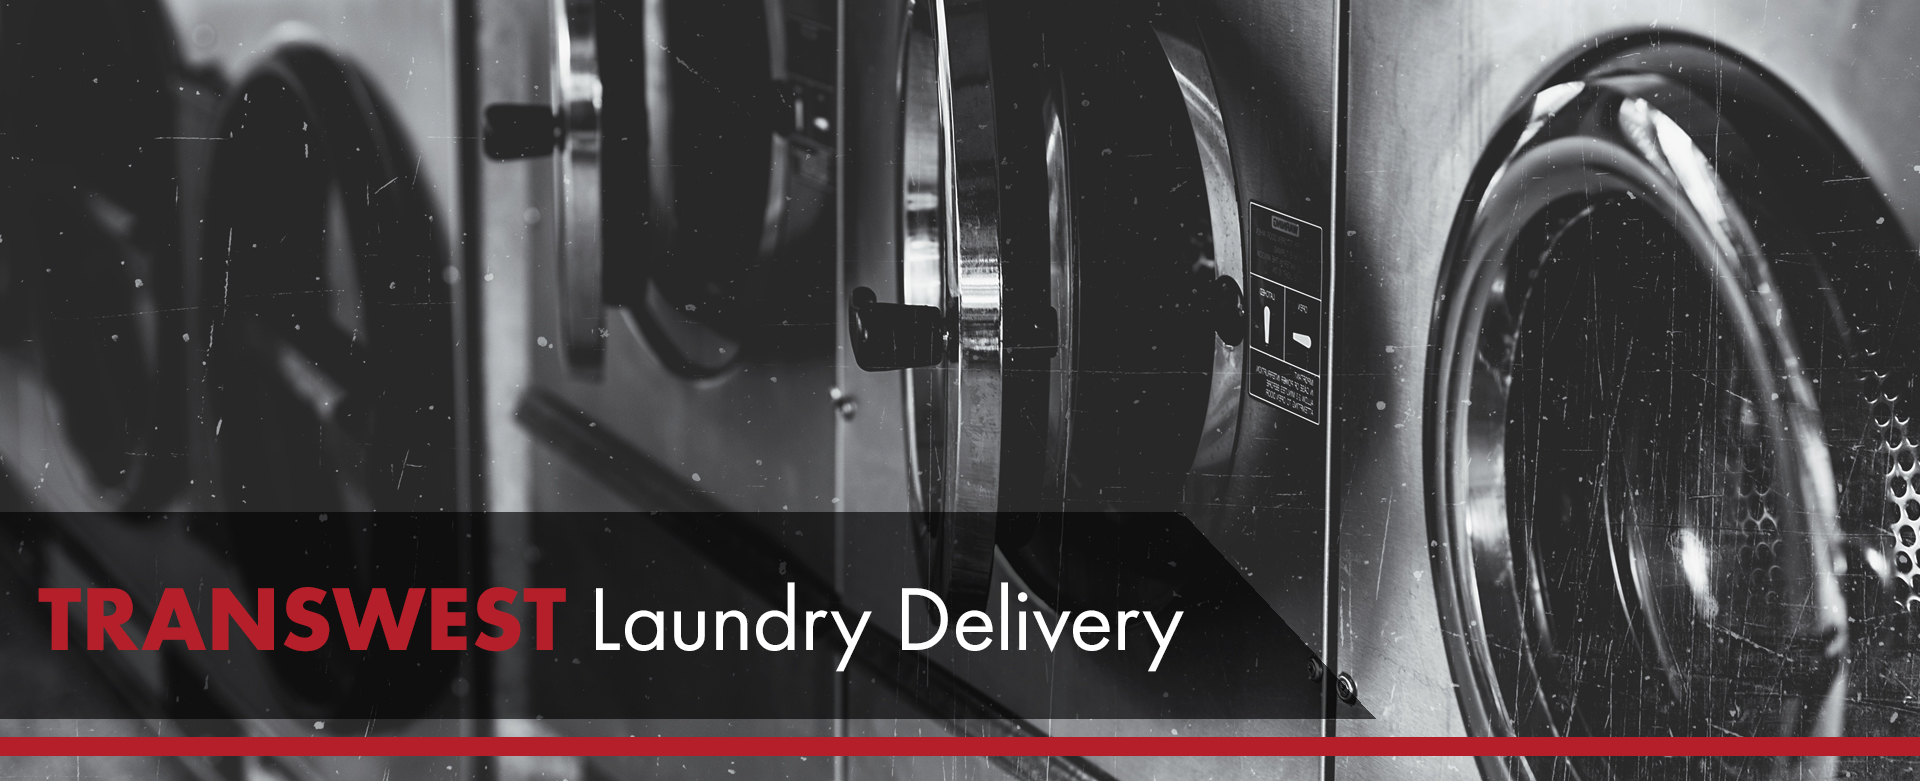 transwest-laundry-delivery-units